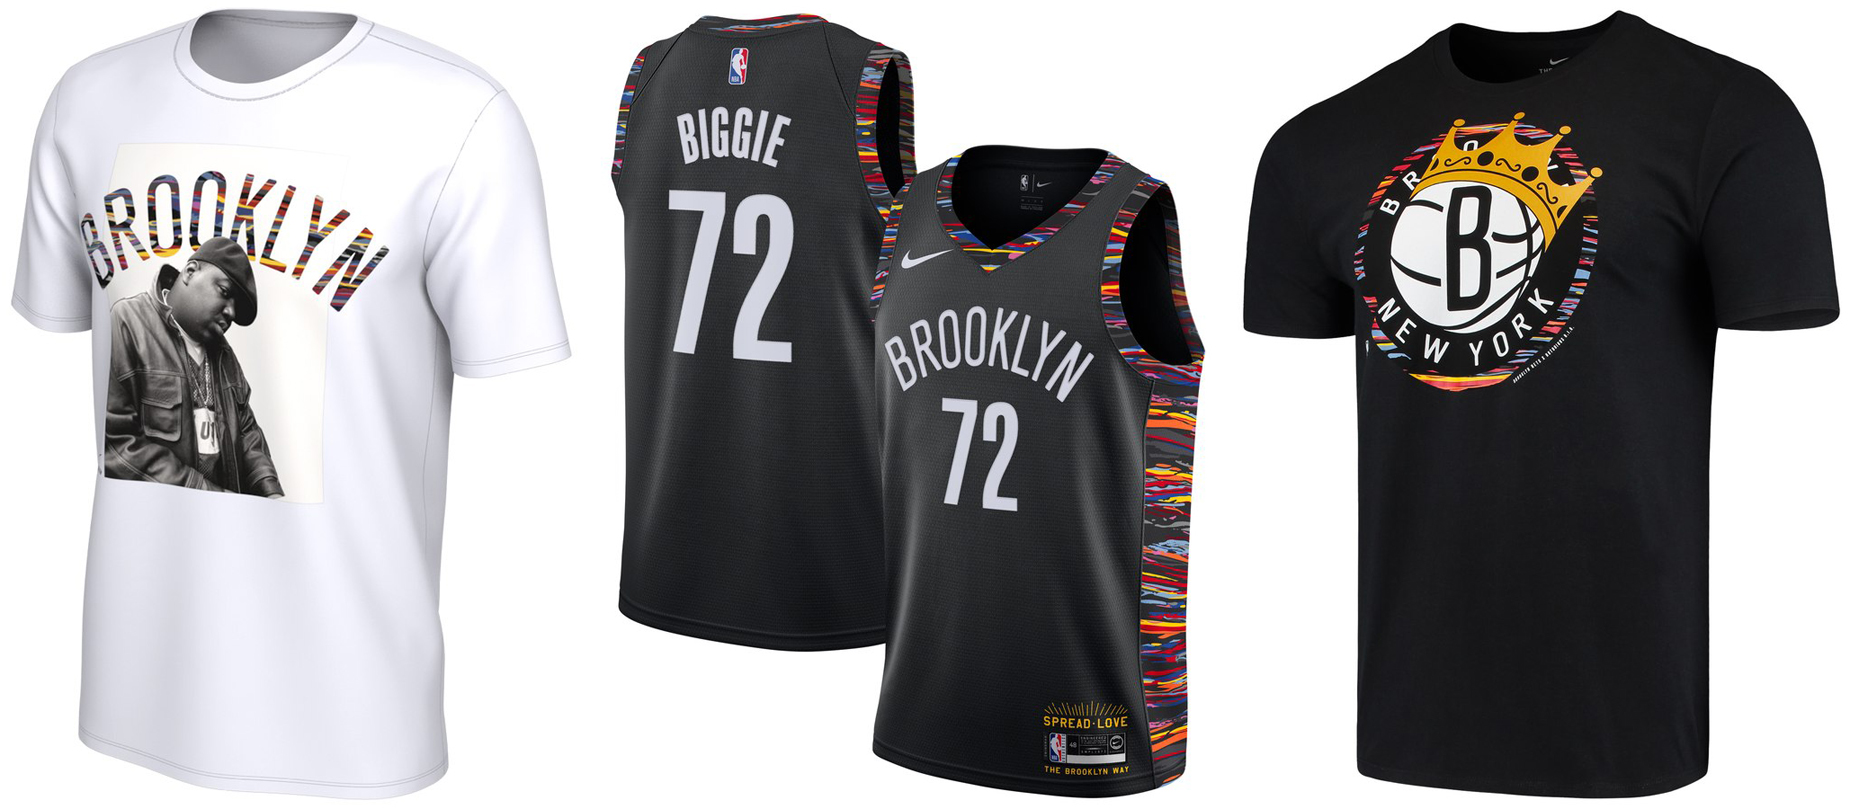 nike-biggie-brooklyn-nets-clothing